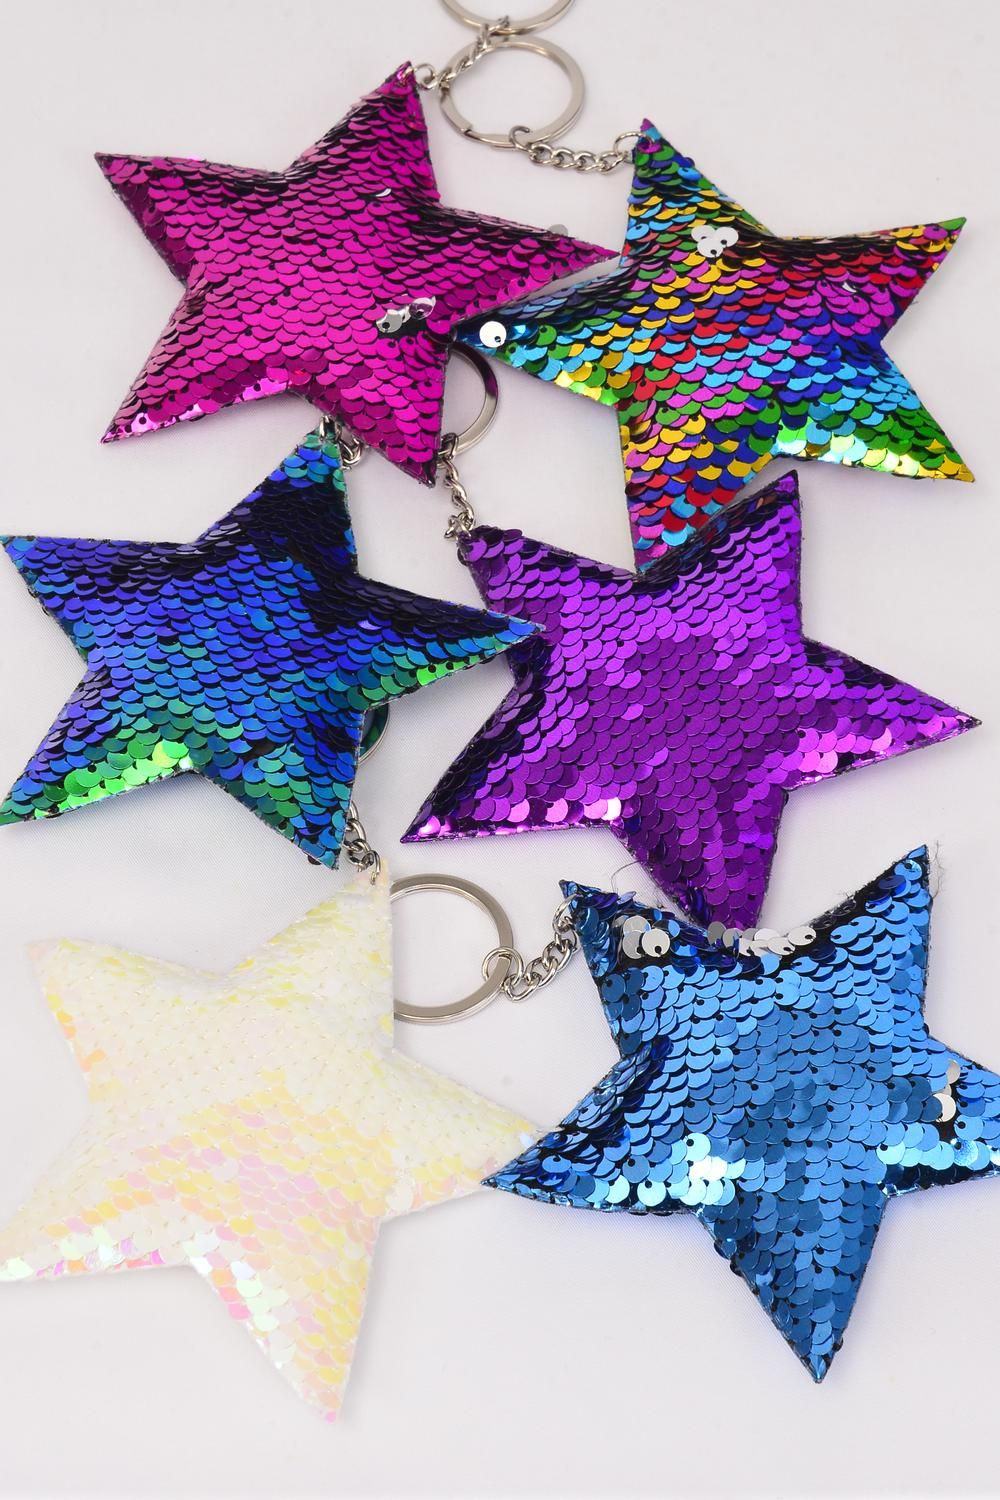 "Key Chain Star Multi Mermaid Sequin Fabric 2 Tone Reversible Dragon Shiny Scale/DZ **Multi** Size-4.5"" Wide,2 of each Color Asst,OPP Bag"